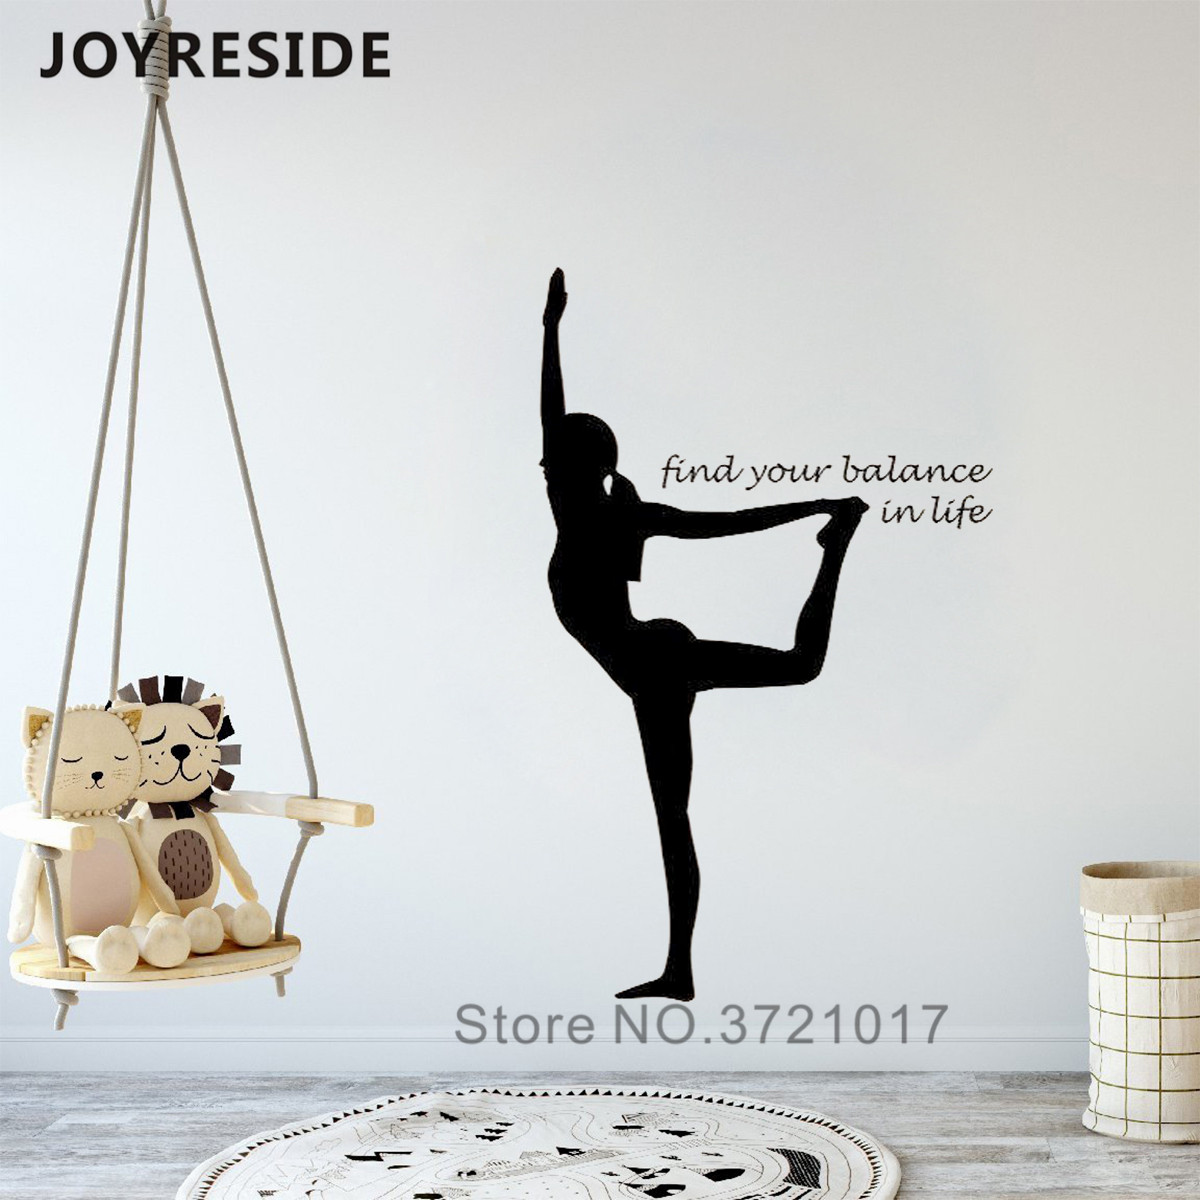 Yoga Sport Woman Pattern Wall Decals Yoga Woman Find Your Balance Quotes Home Rooms Decor Wall Sticker Vinyl Design Mural M327 Wall Stickers Aliexpress